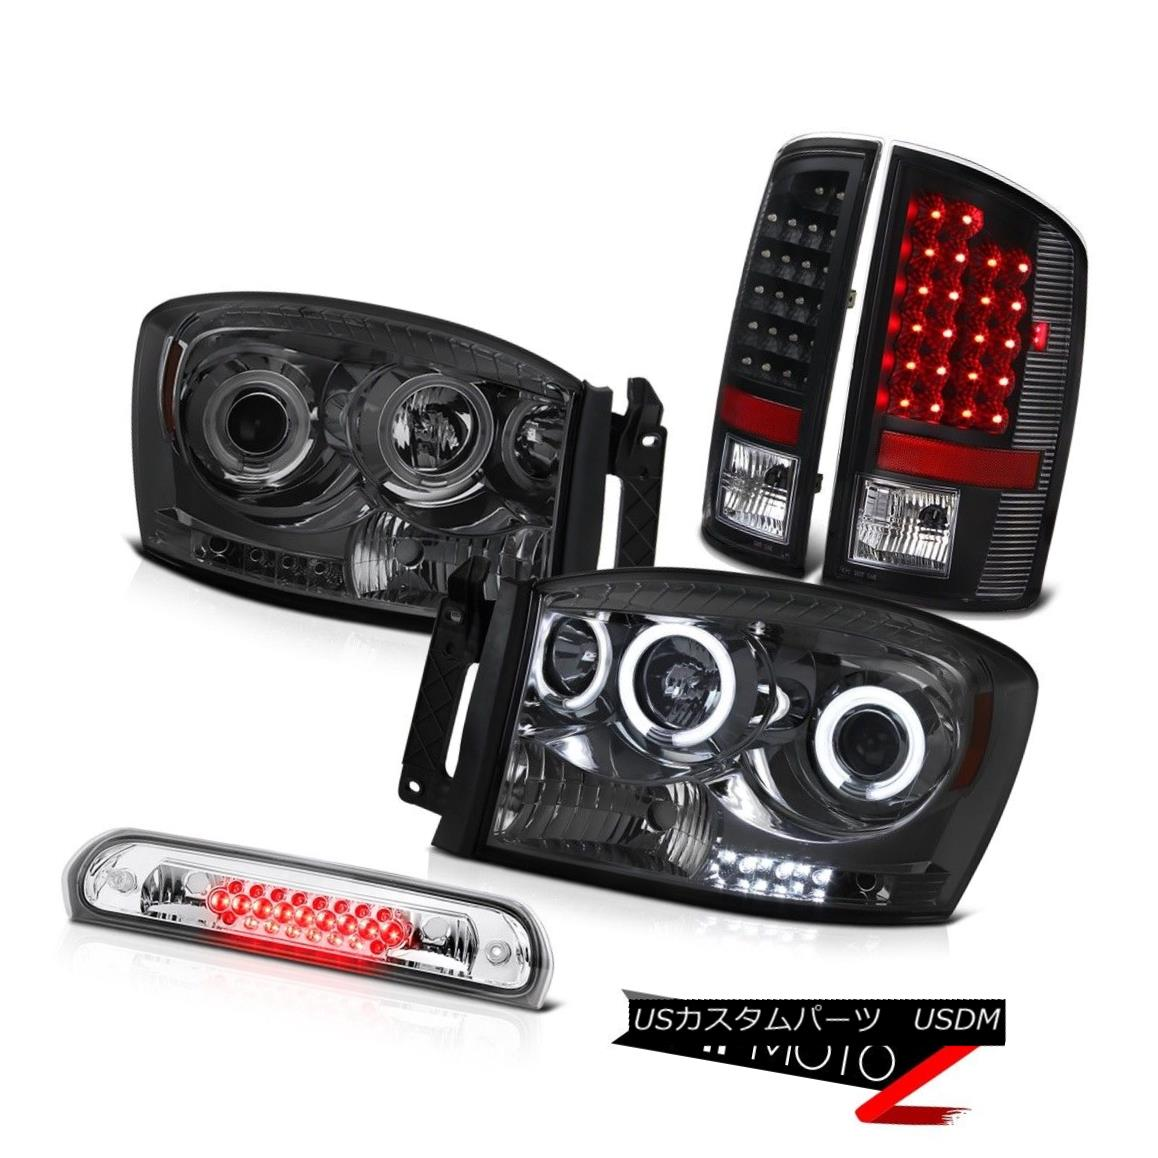 テールライト Dual CCFL Ring Headlights Black LED Tail Lights Third Brake Cargo 07 08 Ram WS デュアルCCFLリングヘッドライトブラックLEDテールライトThird Brake Cargo 07 08 Ram WS